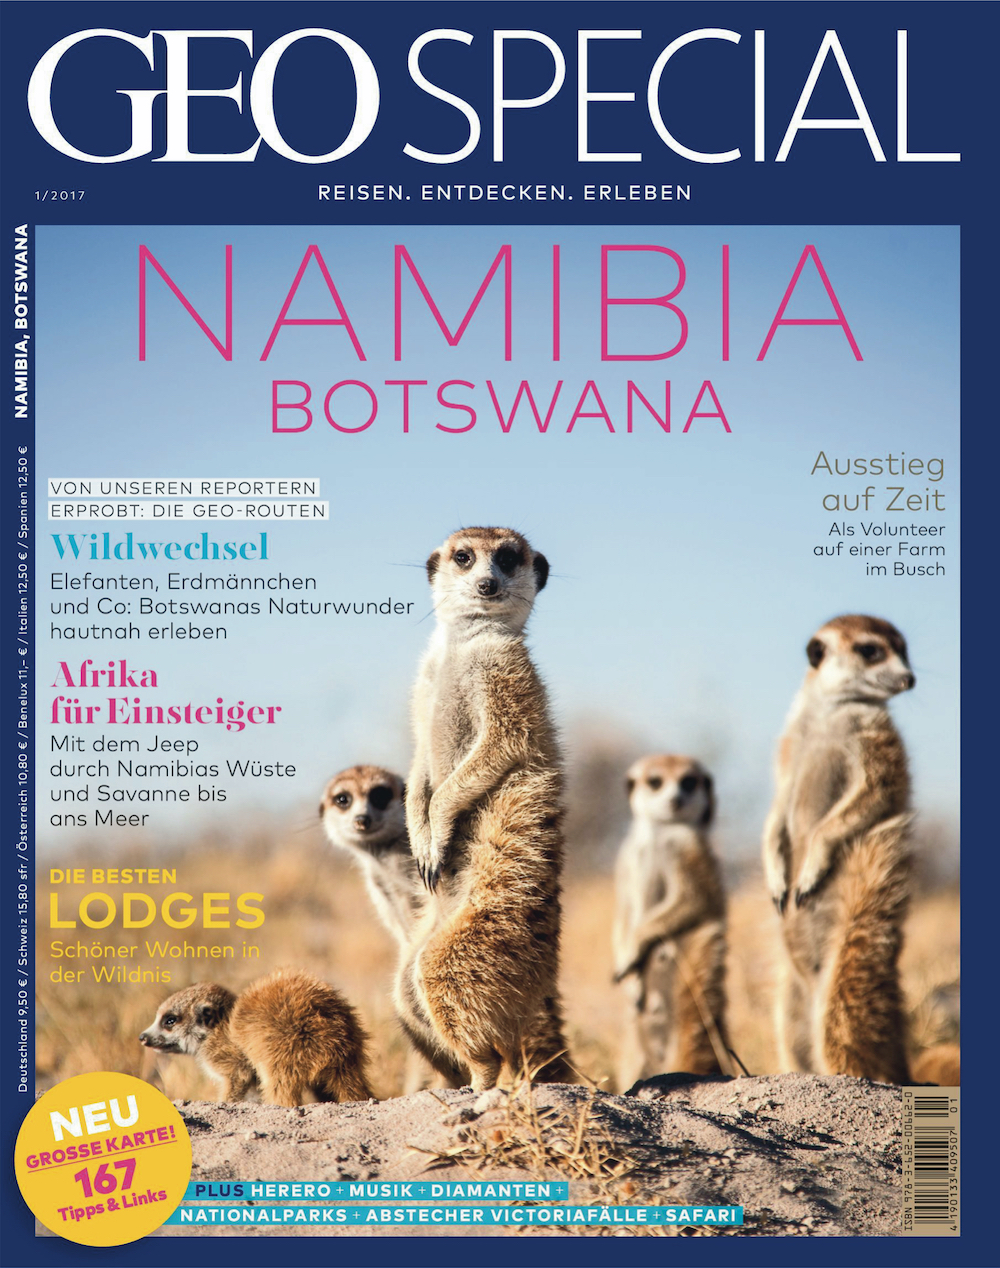 GEO Special 2017-01 Namibia